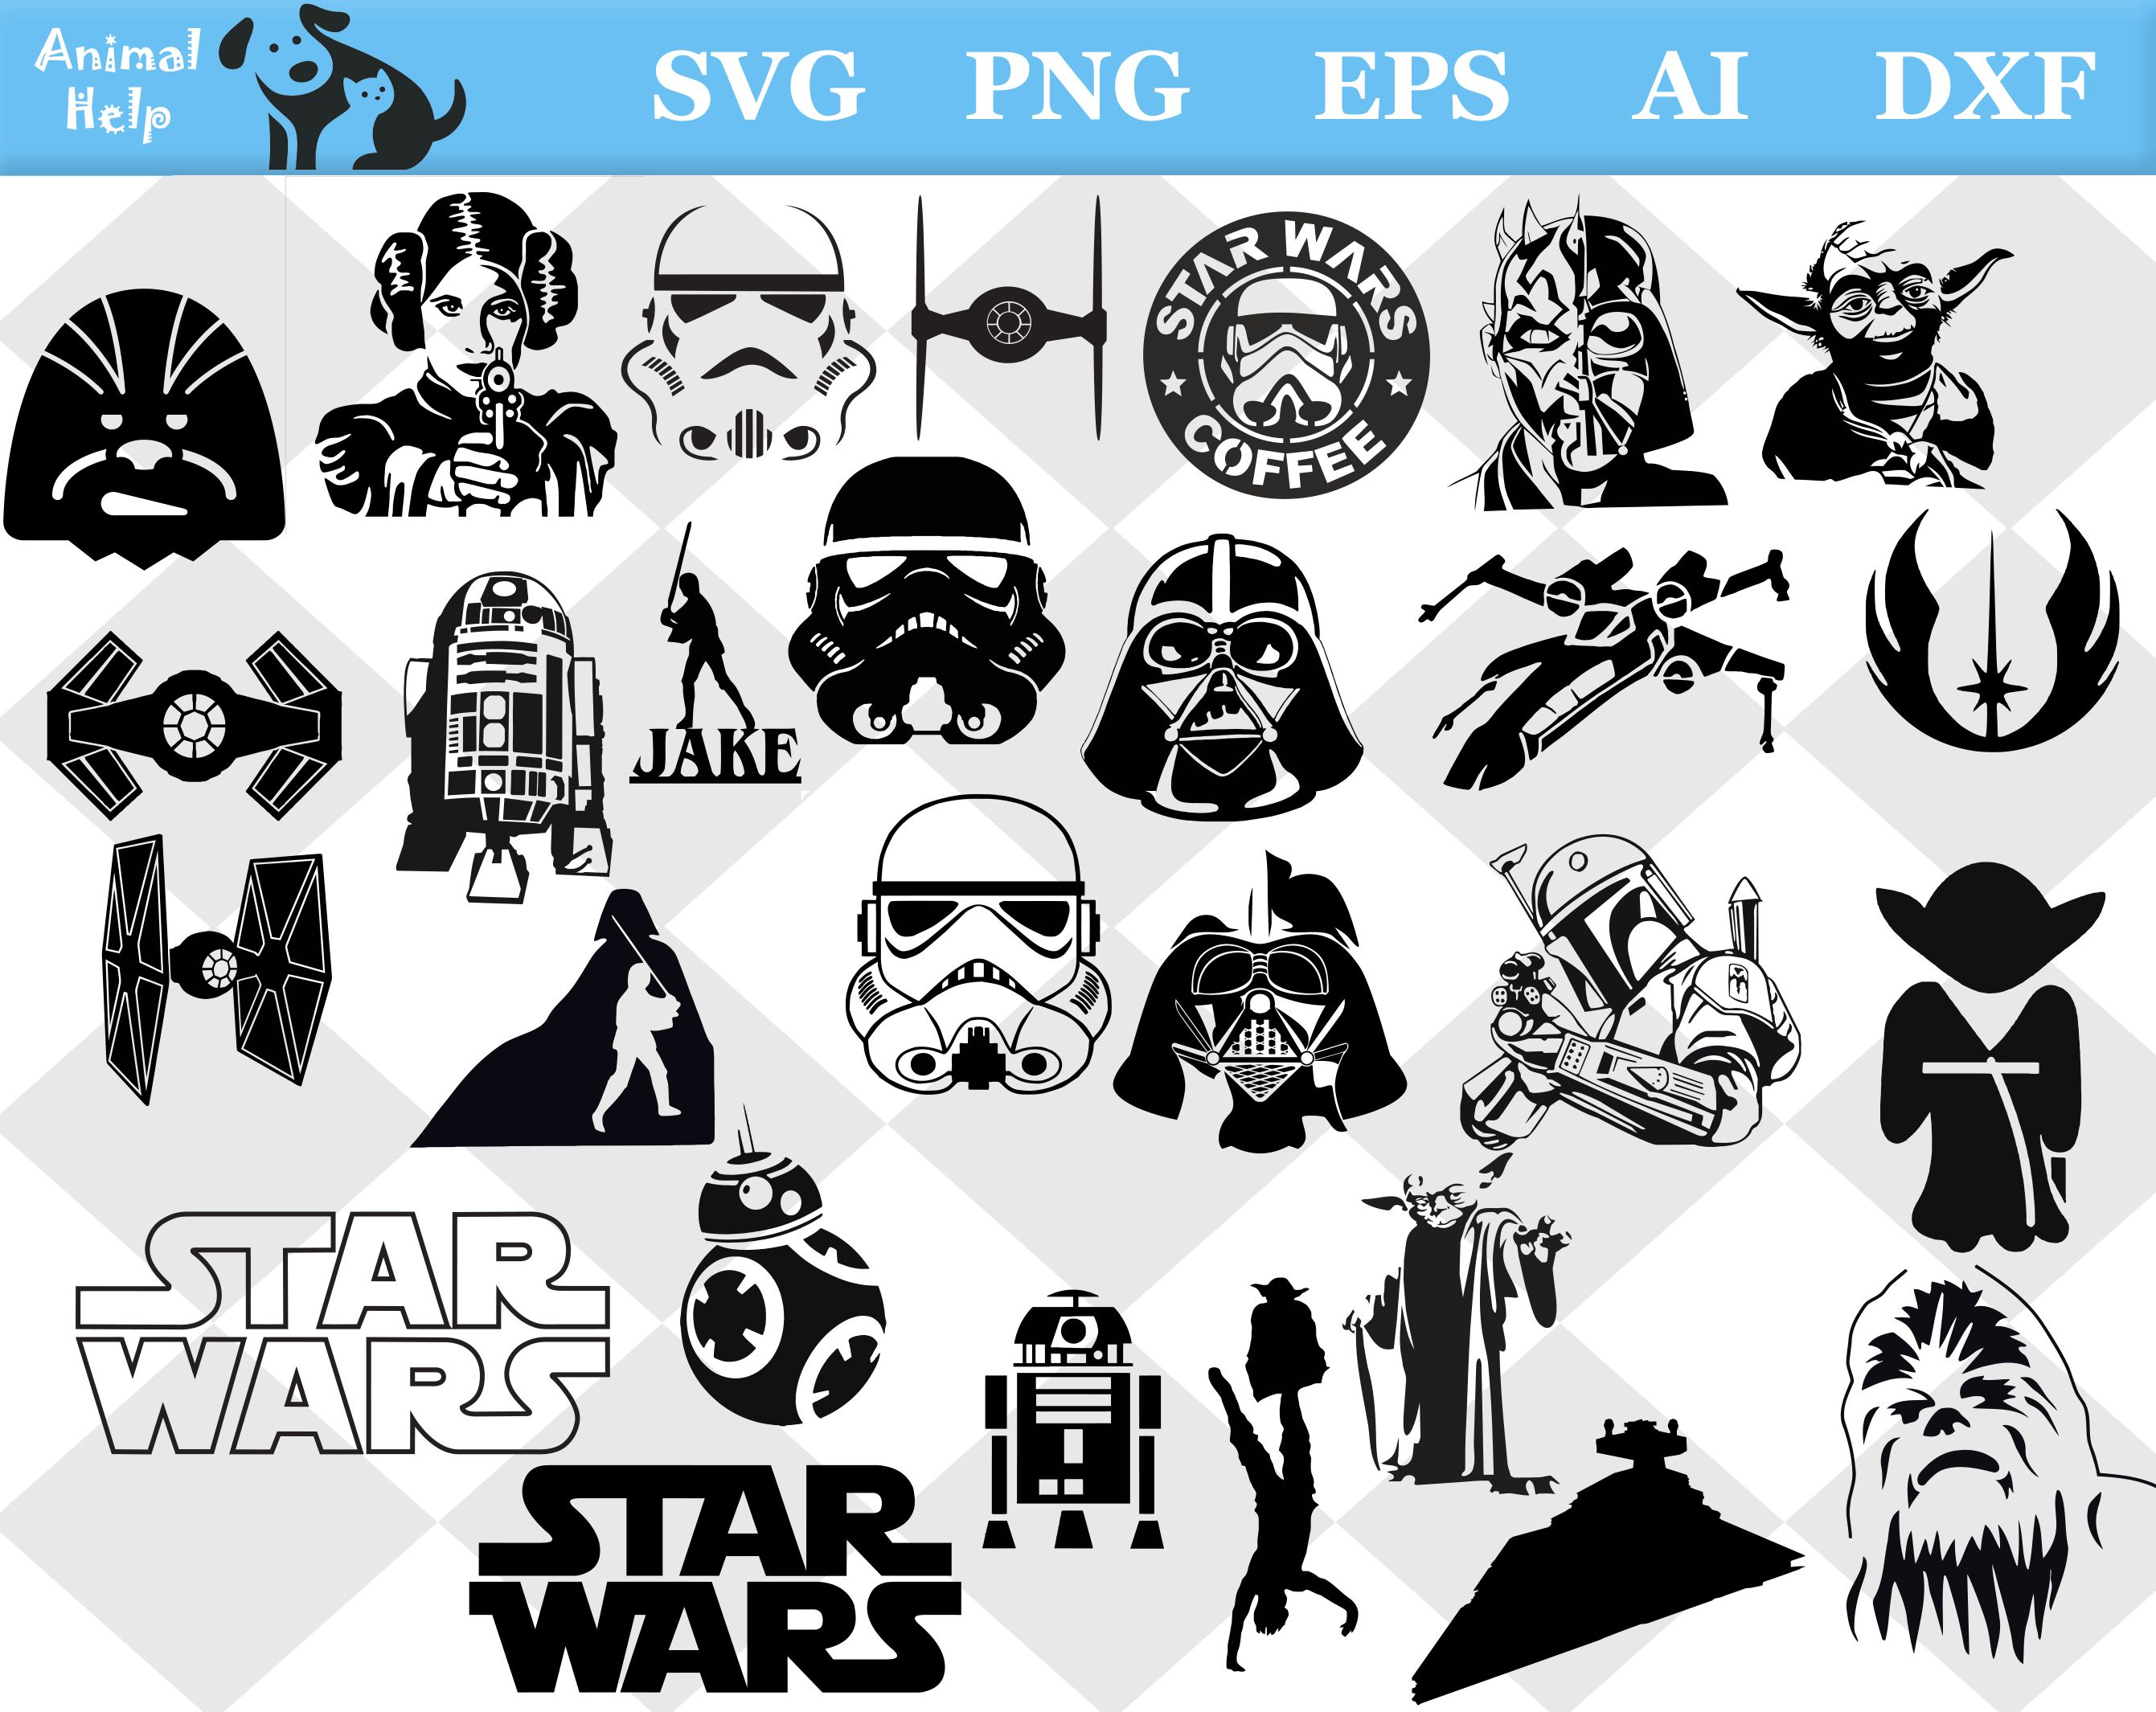 Printable Star Wars Characters Silhouette: Star Wars Characters, Star Wars  Characters Silhouettes